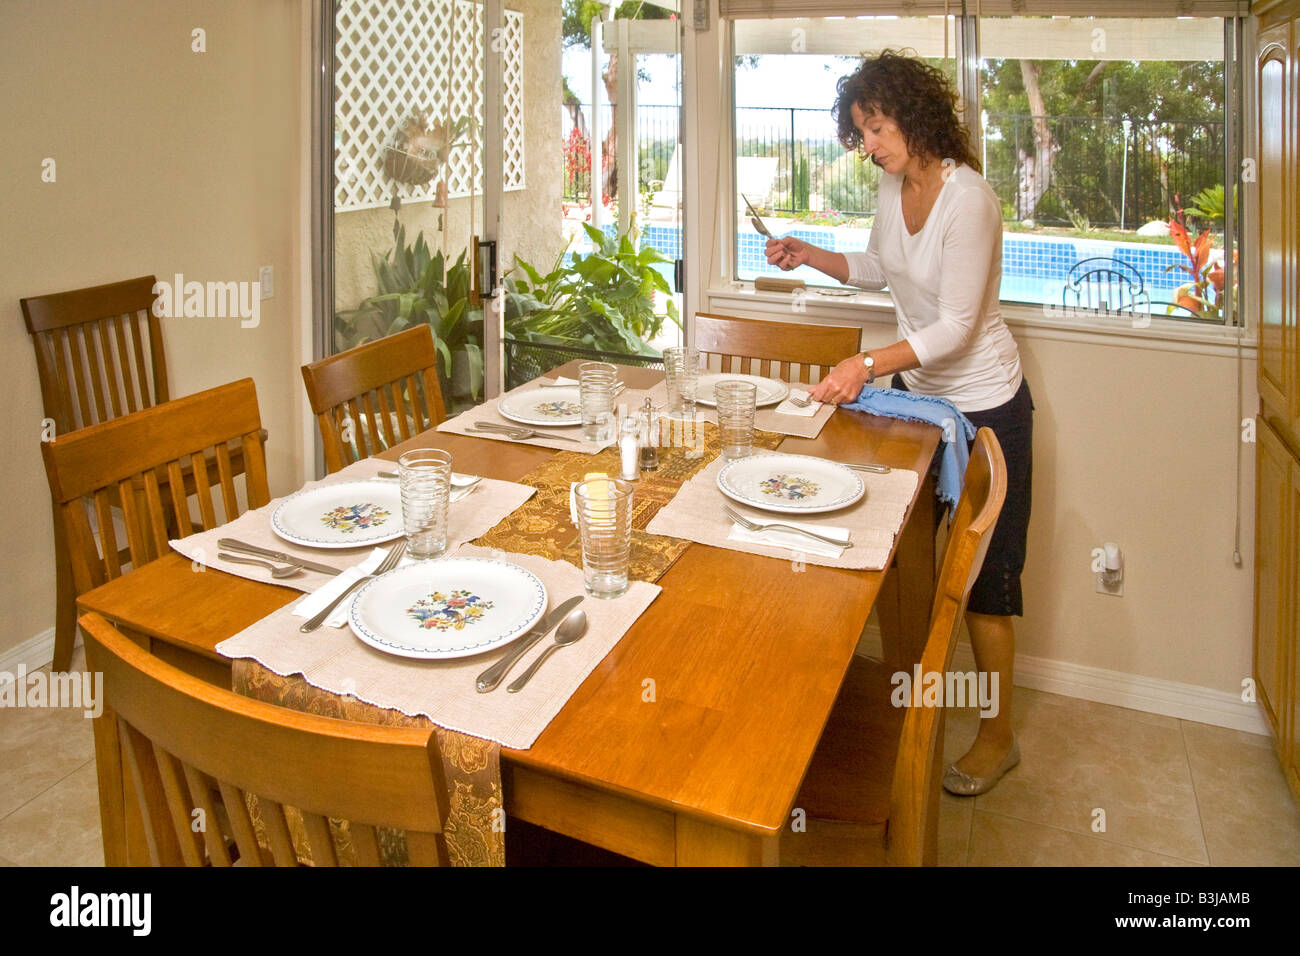 A 50 Year Old Woman Sets Dining Table For Luncheon Guests In Mission Viejo California Note Swimming Pool Outdoor Background